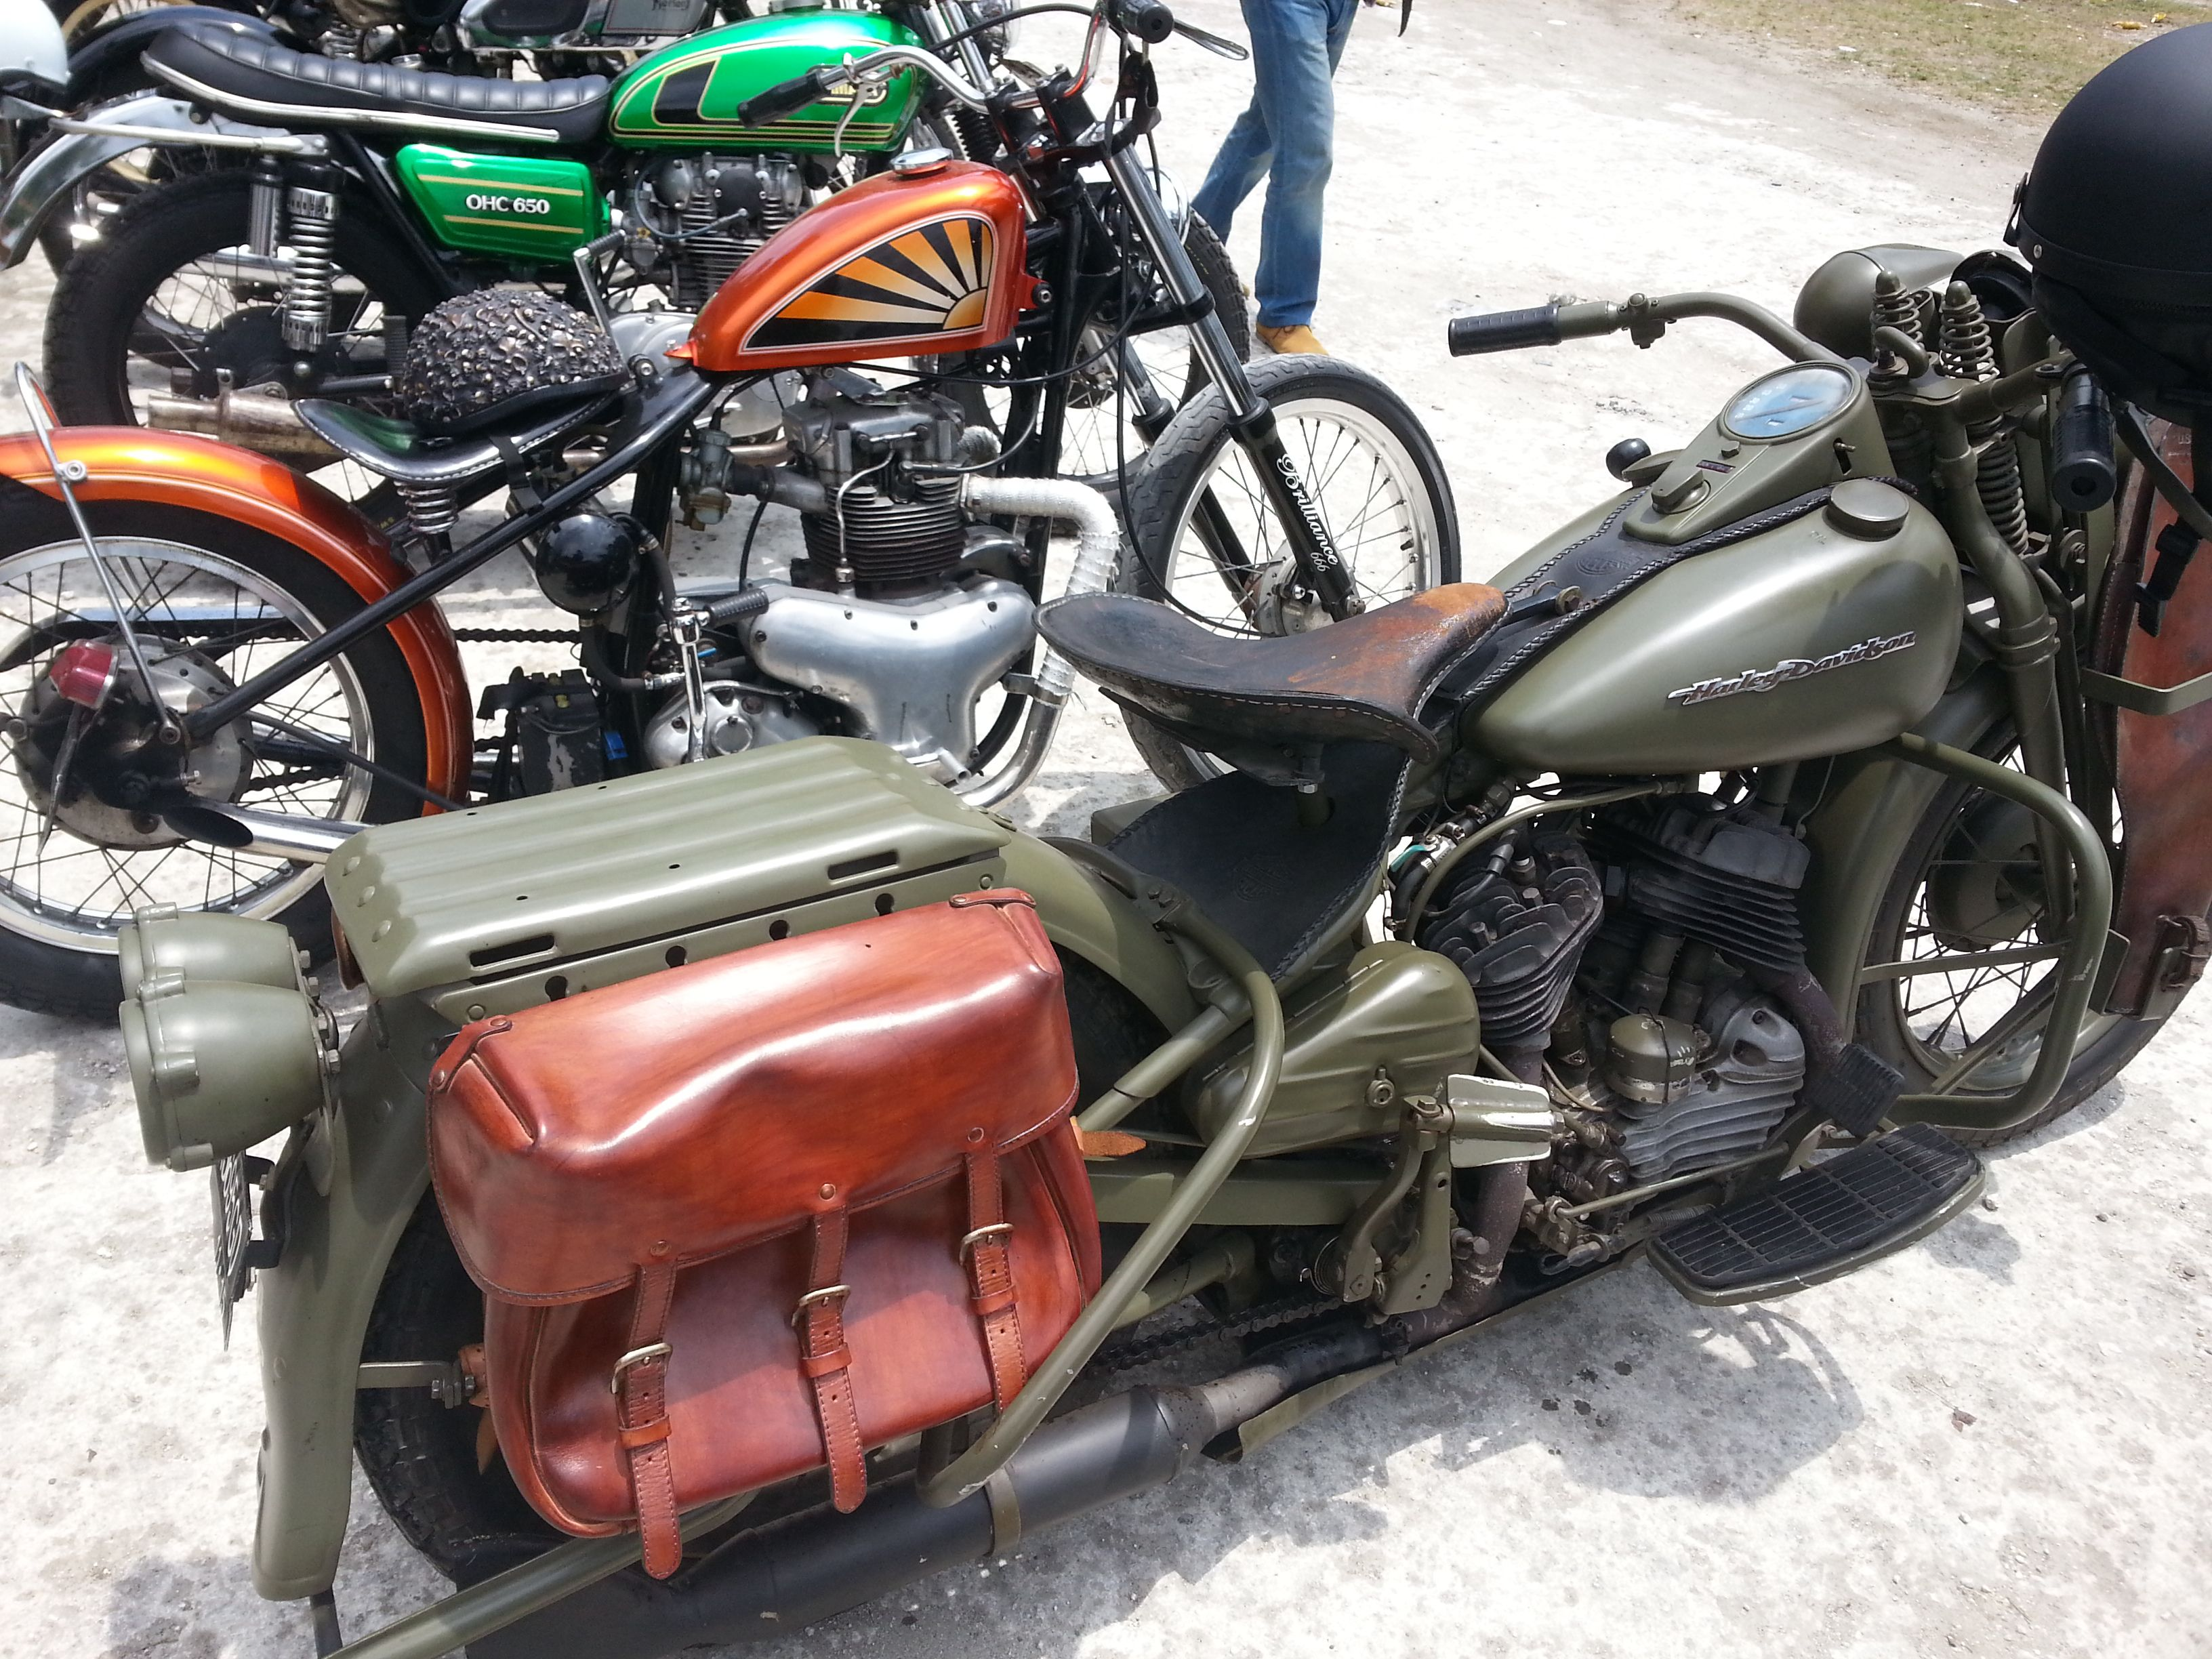 Bali Is The Heaven Of Vintage Motorcycle Enthusiast Took This